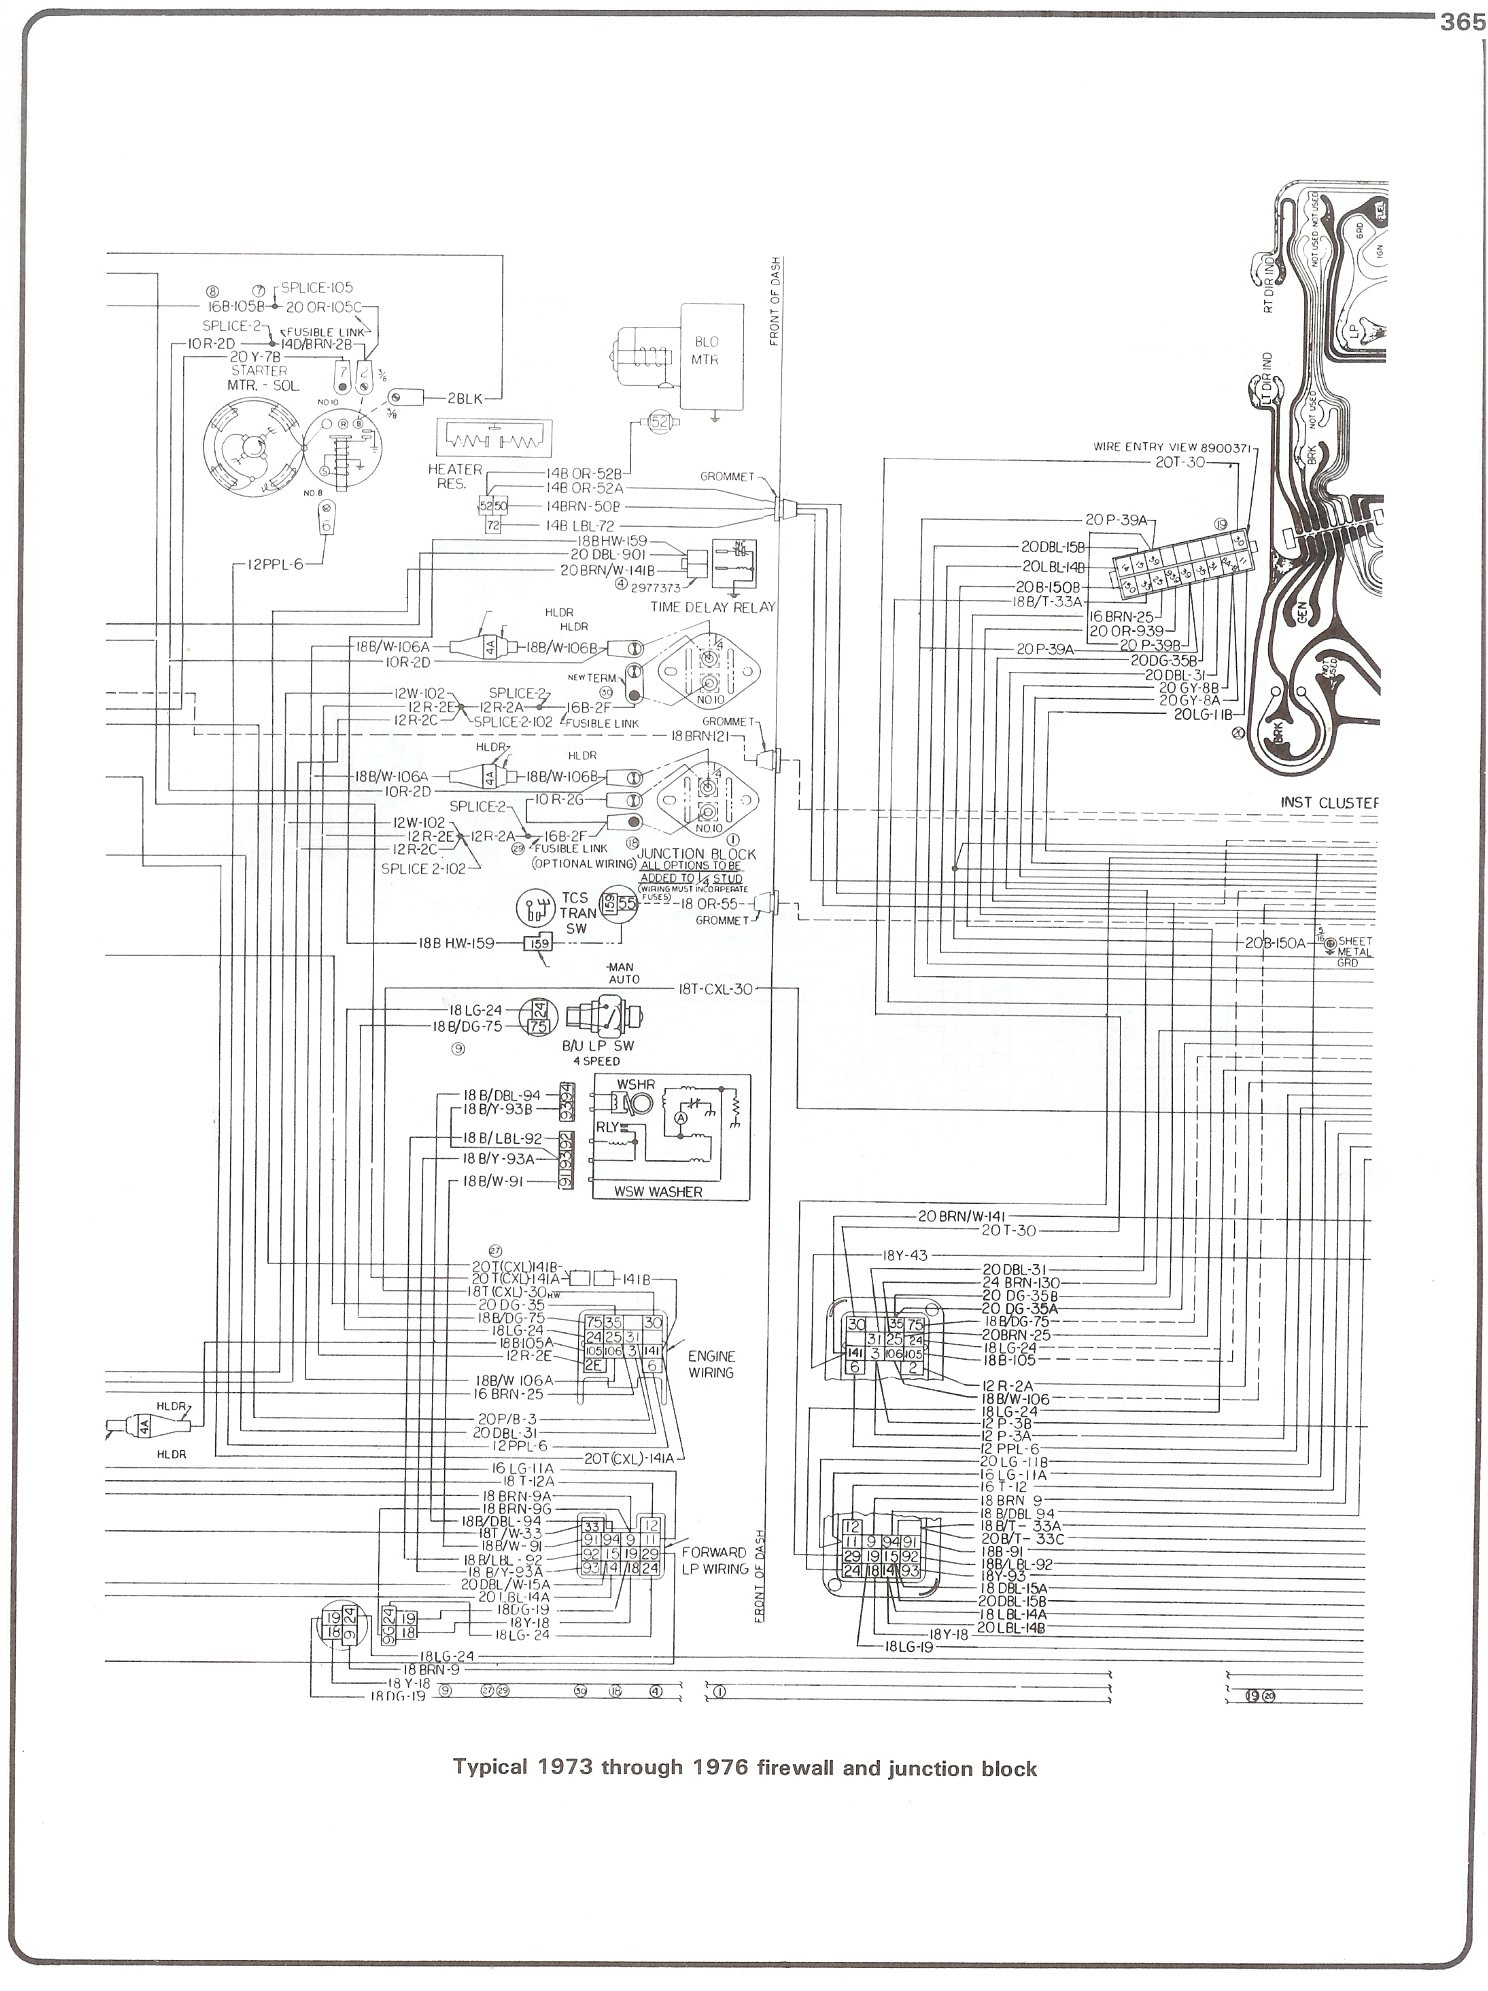 73 76_firewall_junct complete 73 87 wiring diagrams 73 bronco wiring diagram at n-0.co